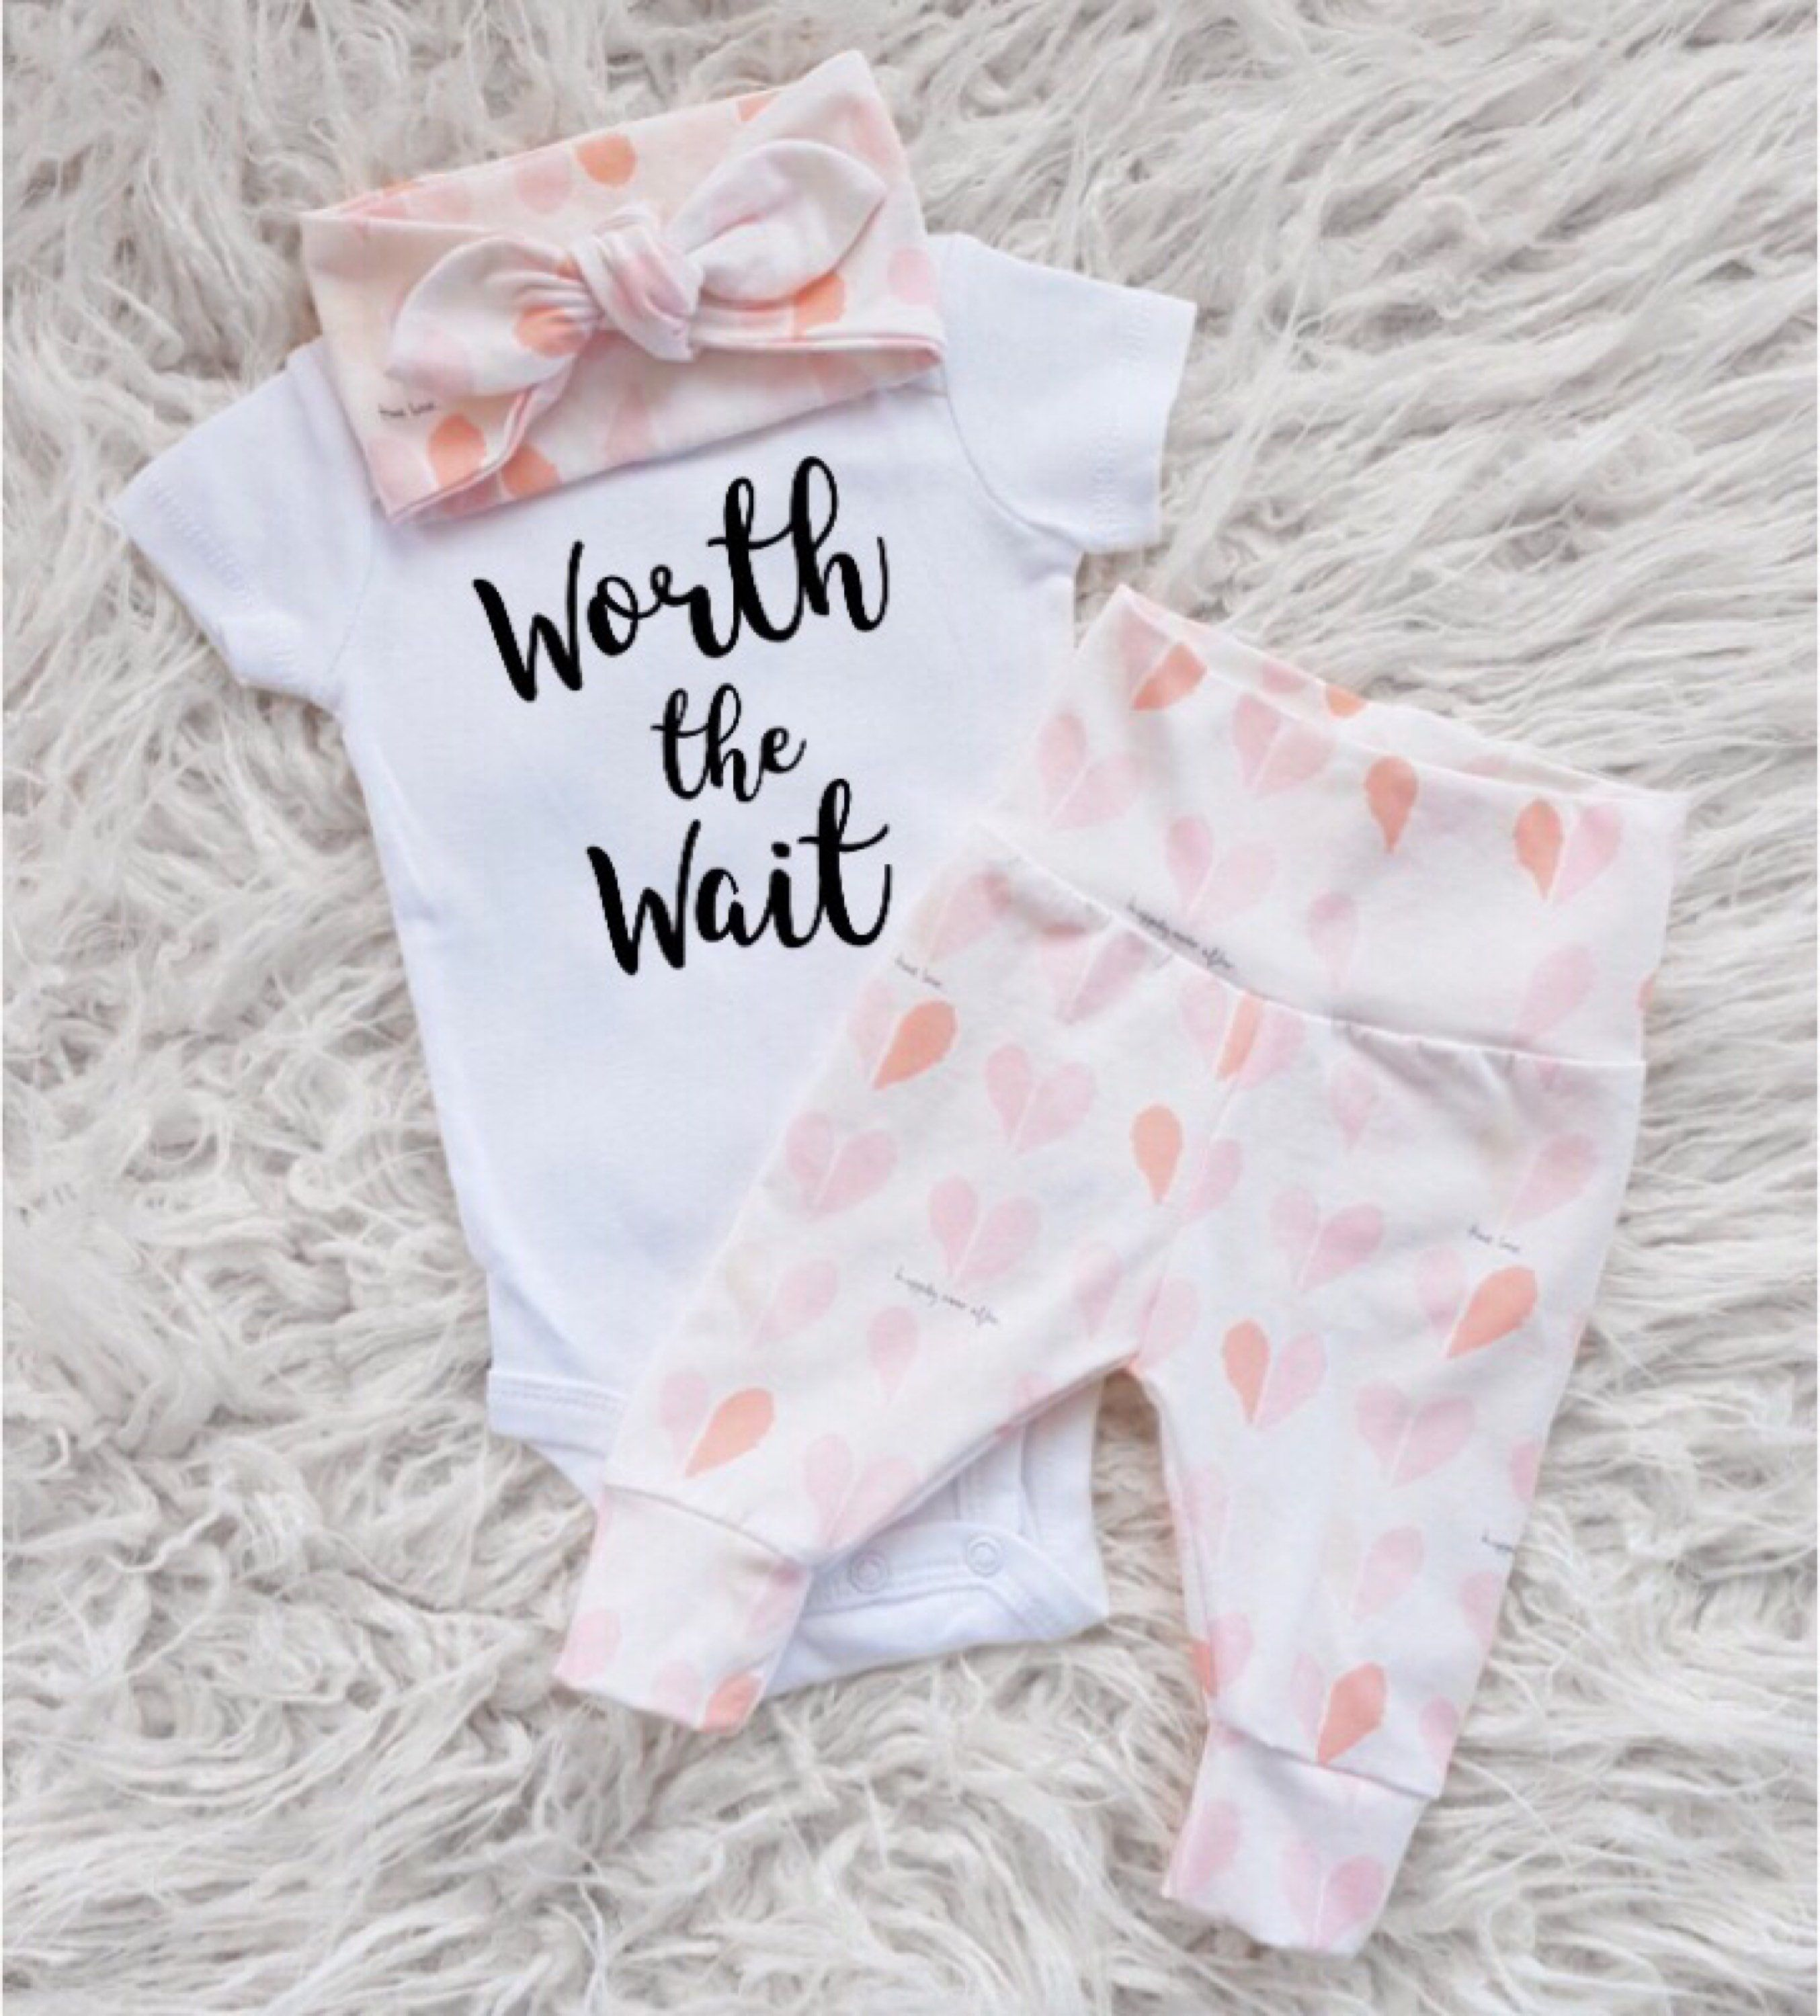 9728ccc15 baby going home outfit girl babys first outfit home girl pink baby girl  clothes girly baby outfit girly clothes newborn girly baby by EatSleepDrool  on Etsy